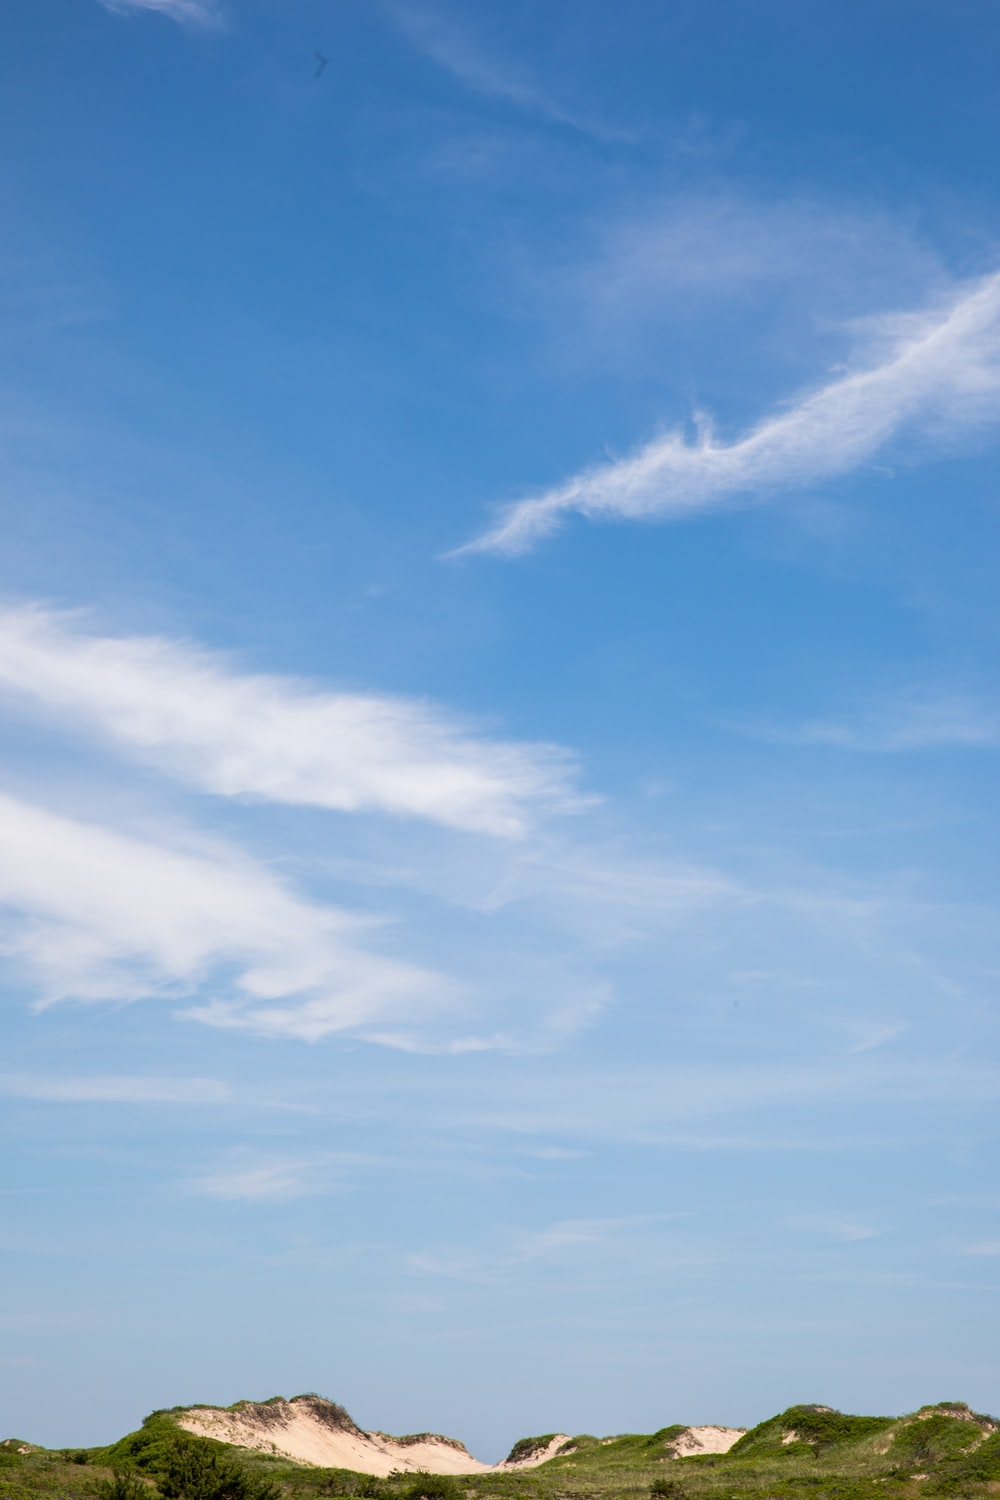 Sky Wallpapers: Free HD Download [500+ ...